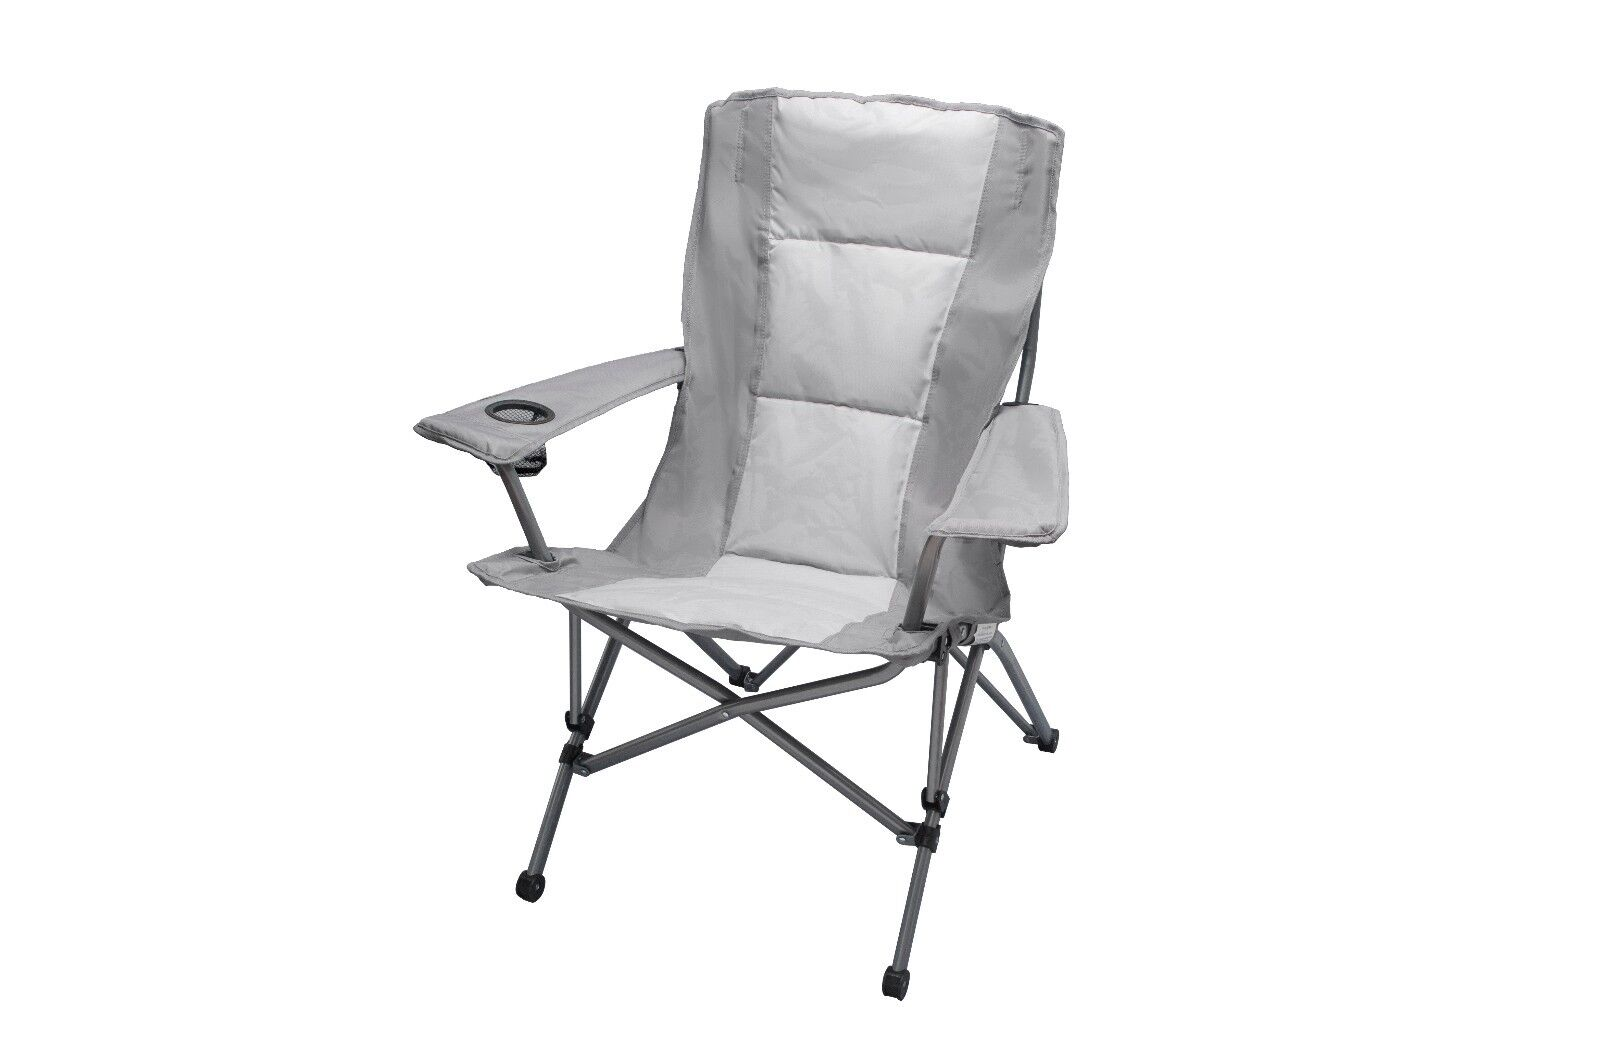 Relags Travelchair 'Lodge Comfort Comfort 'Lodge ST' eb0be7